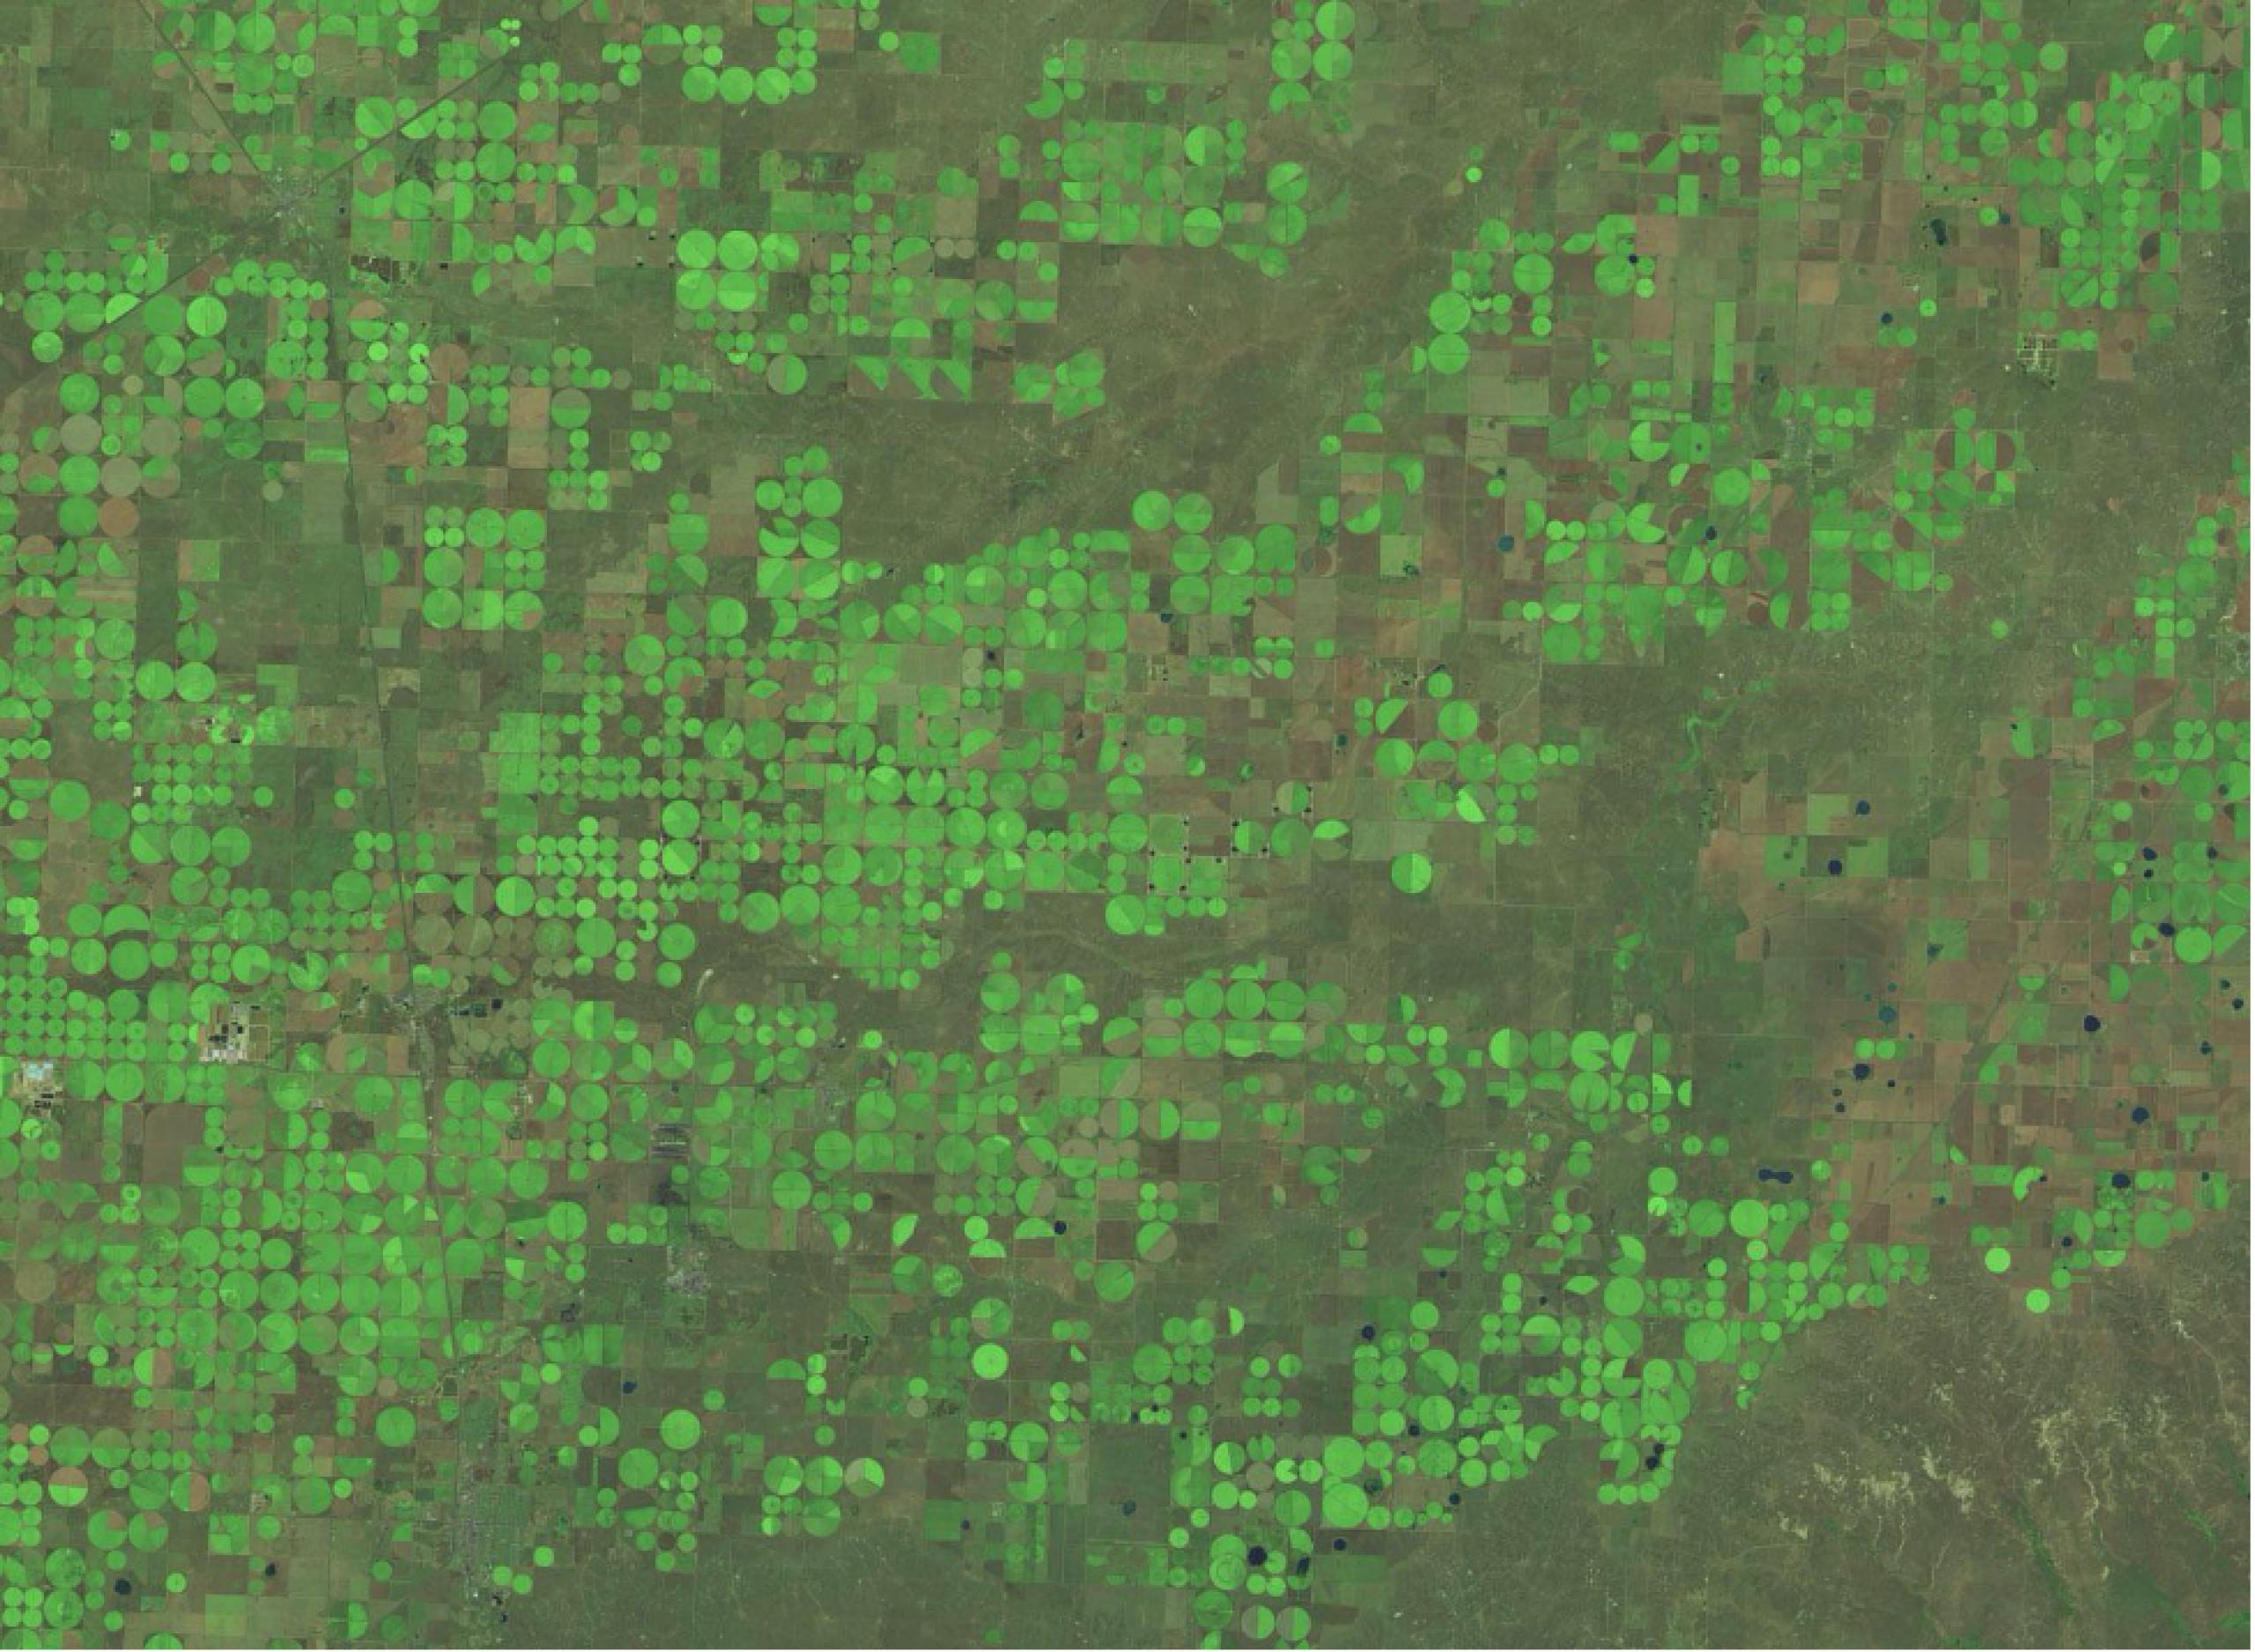 Aerial image bright green circles against a background of drab green.